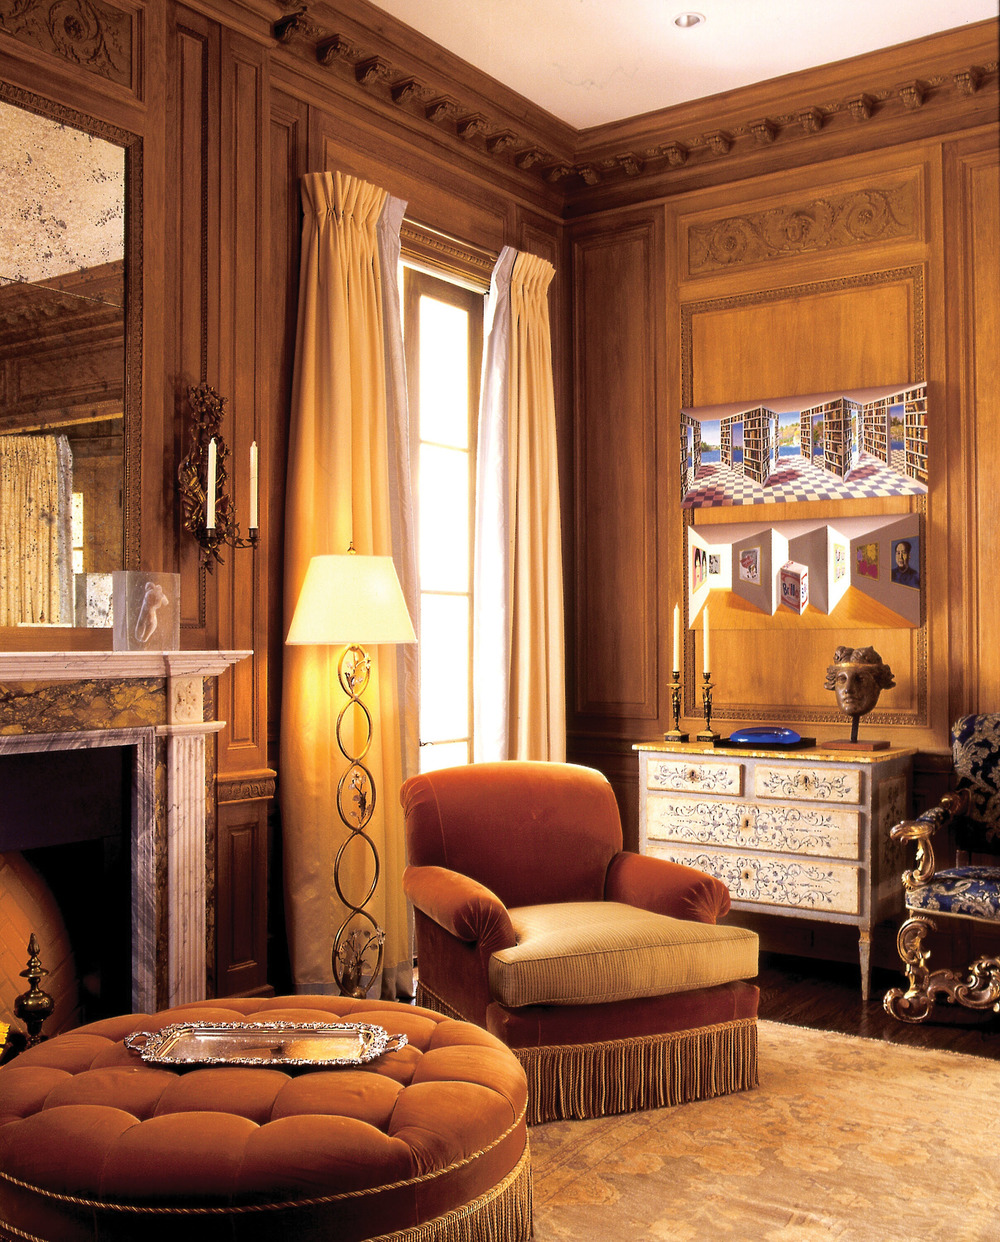 """Couturier made sure the owner's bedroom would be a """"lovely, precious, feminine"""" space where everything felt personal to her. A 17th-century Italian armchair rests beside an Italian late 18th-century chest of drawers. The panelling was made in France from remnants of authentic 18th-century French panelling."""